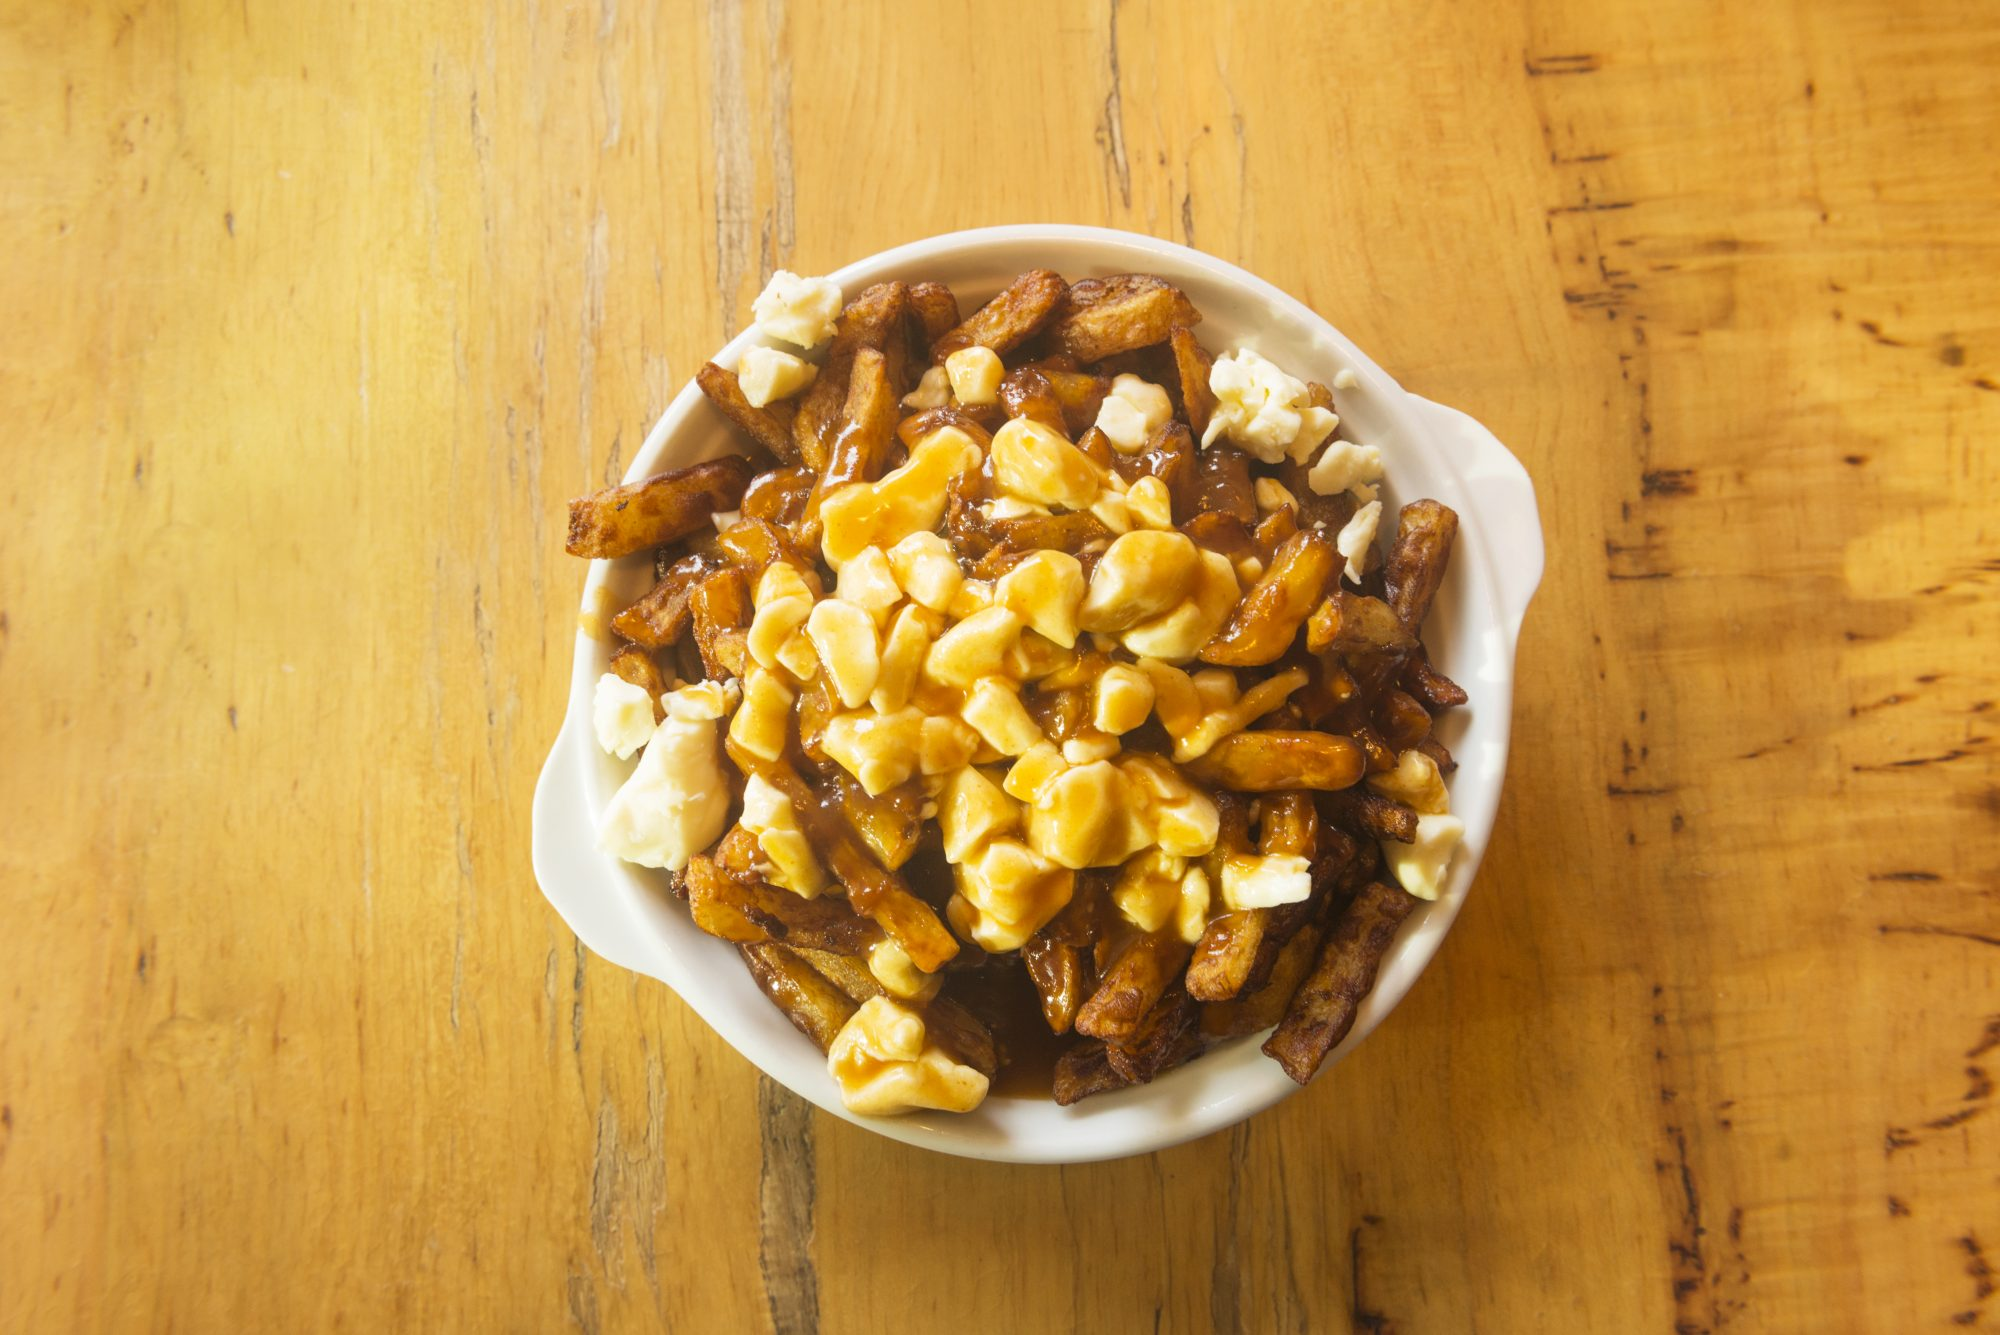 Poutine on wood 7/14/20 Getty